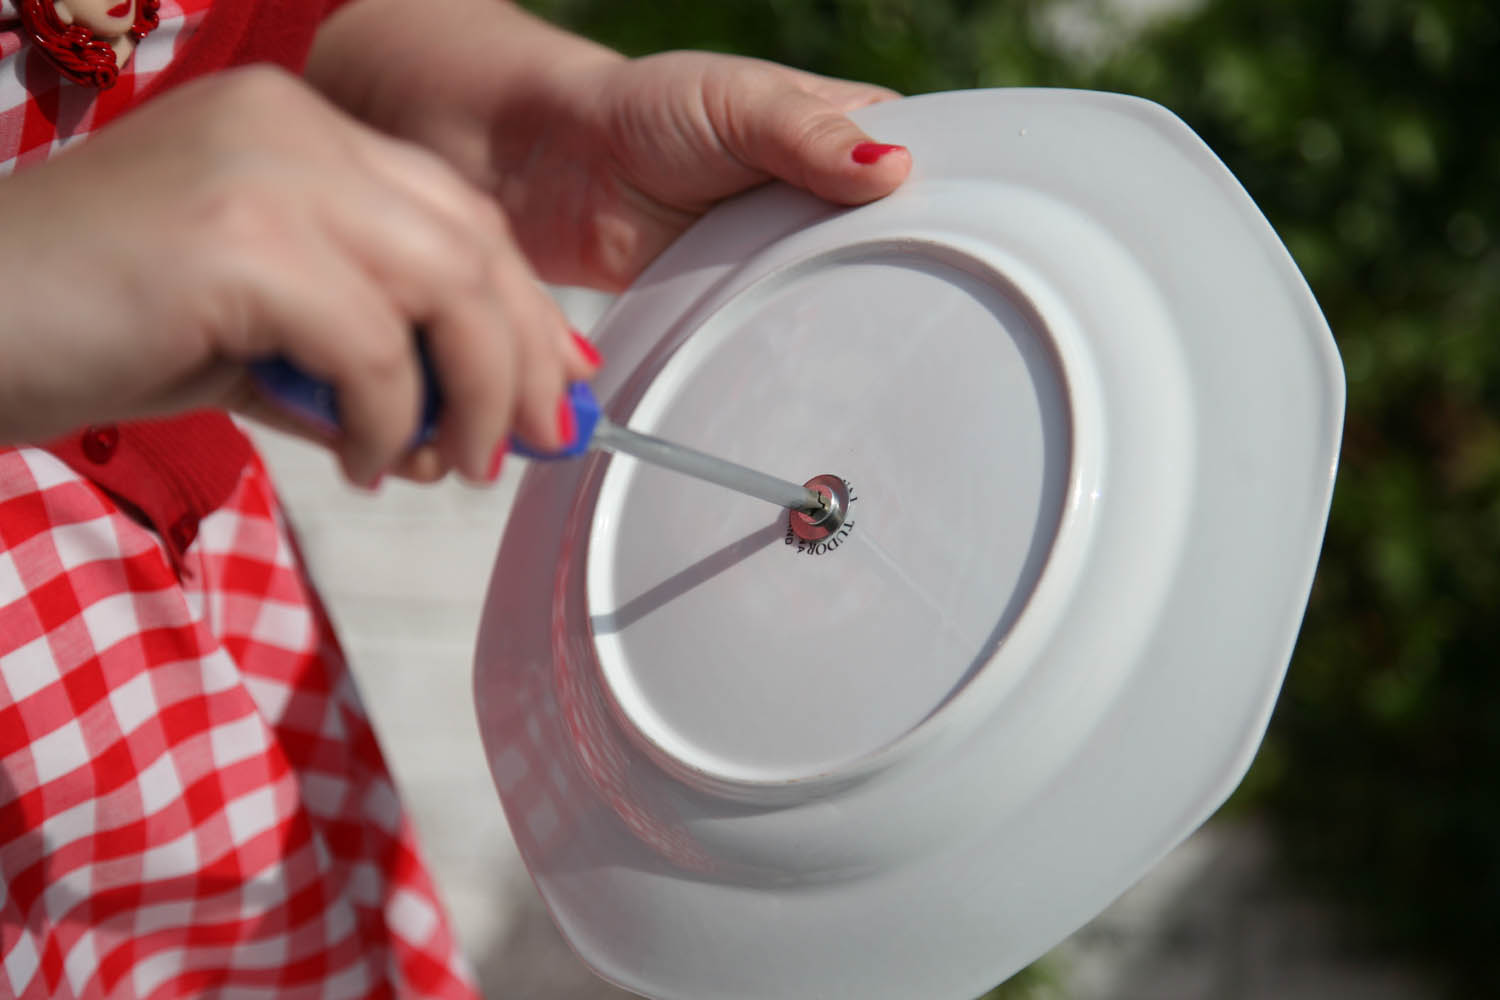 Put your washers on and then poke the bottom screw into the plate. Put a soft washer on the topside of this plate and then apply the cake stand fitting. & DIY Tutorial: Vintage China Cake Stand · Rock n Roll Bride